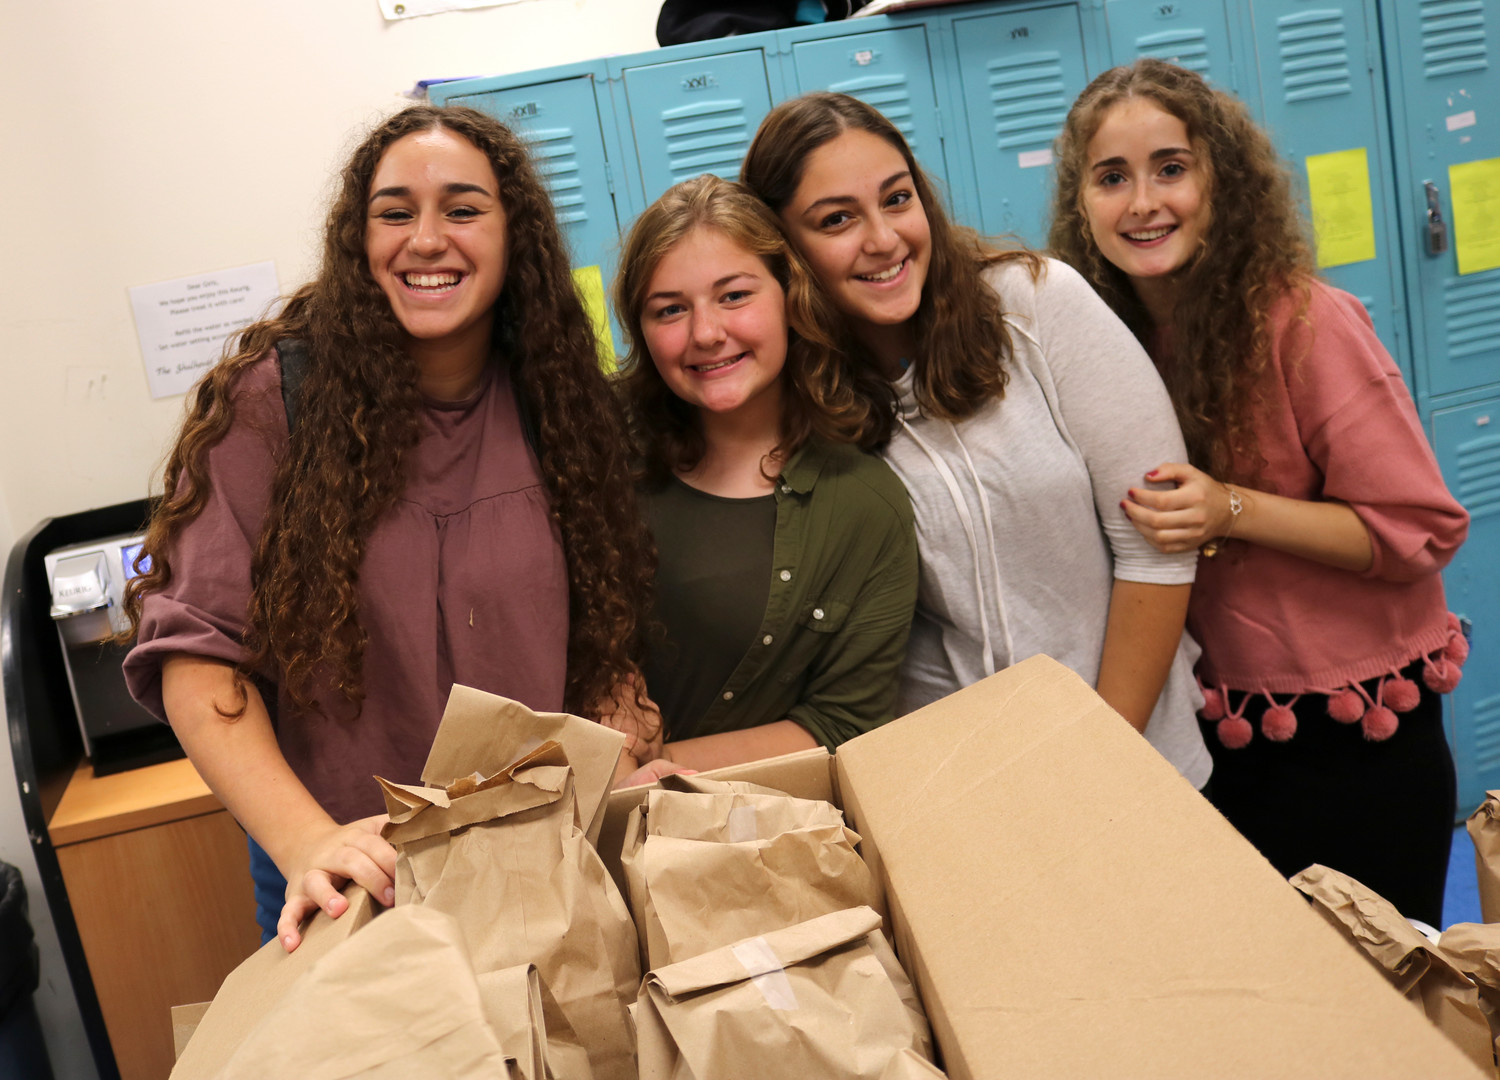 From left: Rachelli Klein of Lawrence, Hadassah Fertig of Woodmere, Shana Schapira of Brooklyn, and Hannah Zerbib of Lawrence.